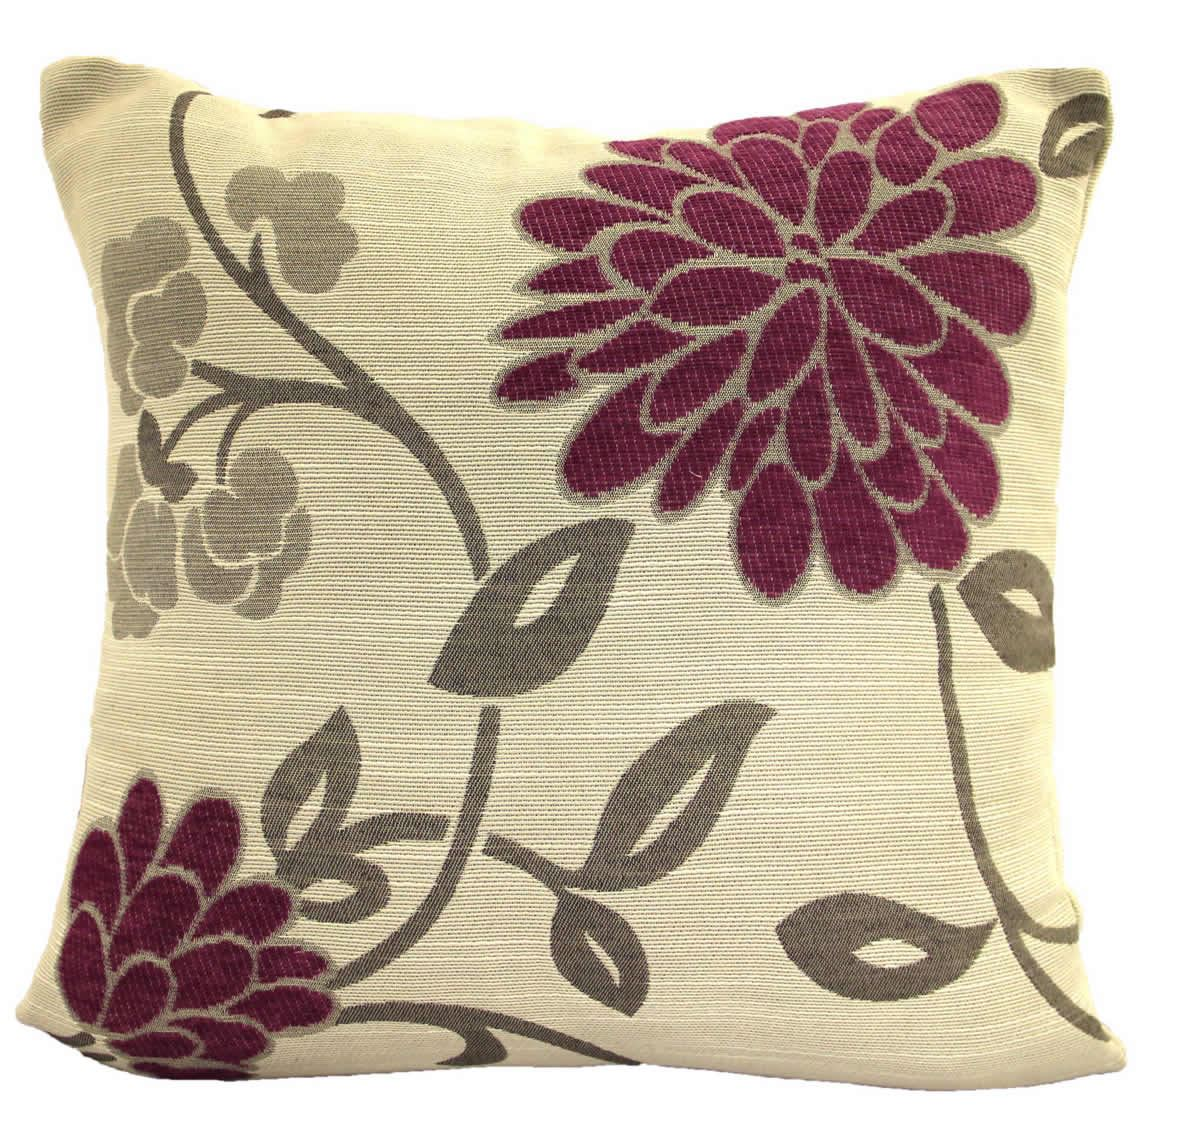 Decorative Floral Pillow Covers : CHRYSTIE LUXURY FLORAL CHENILLE CUSHION COVER 18